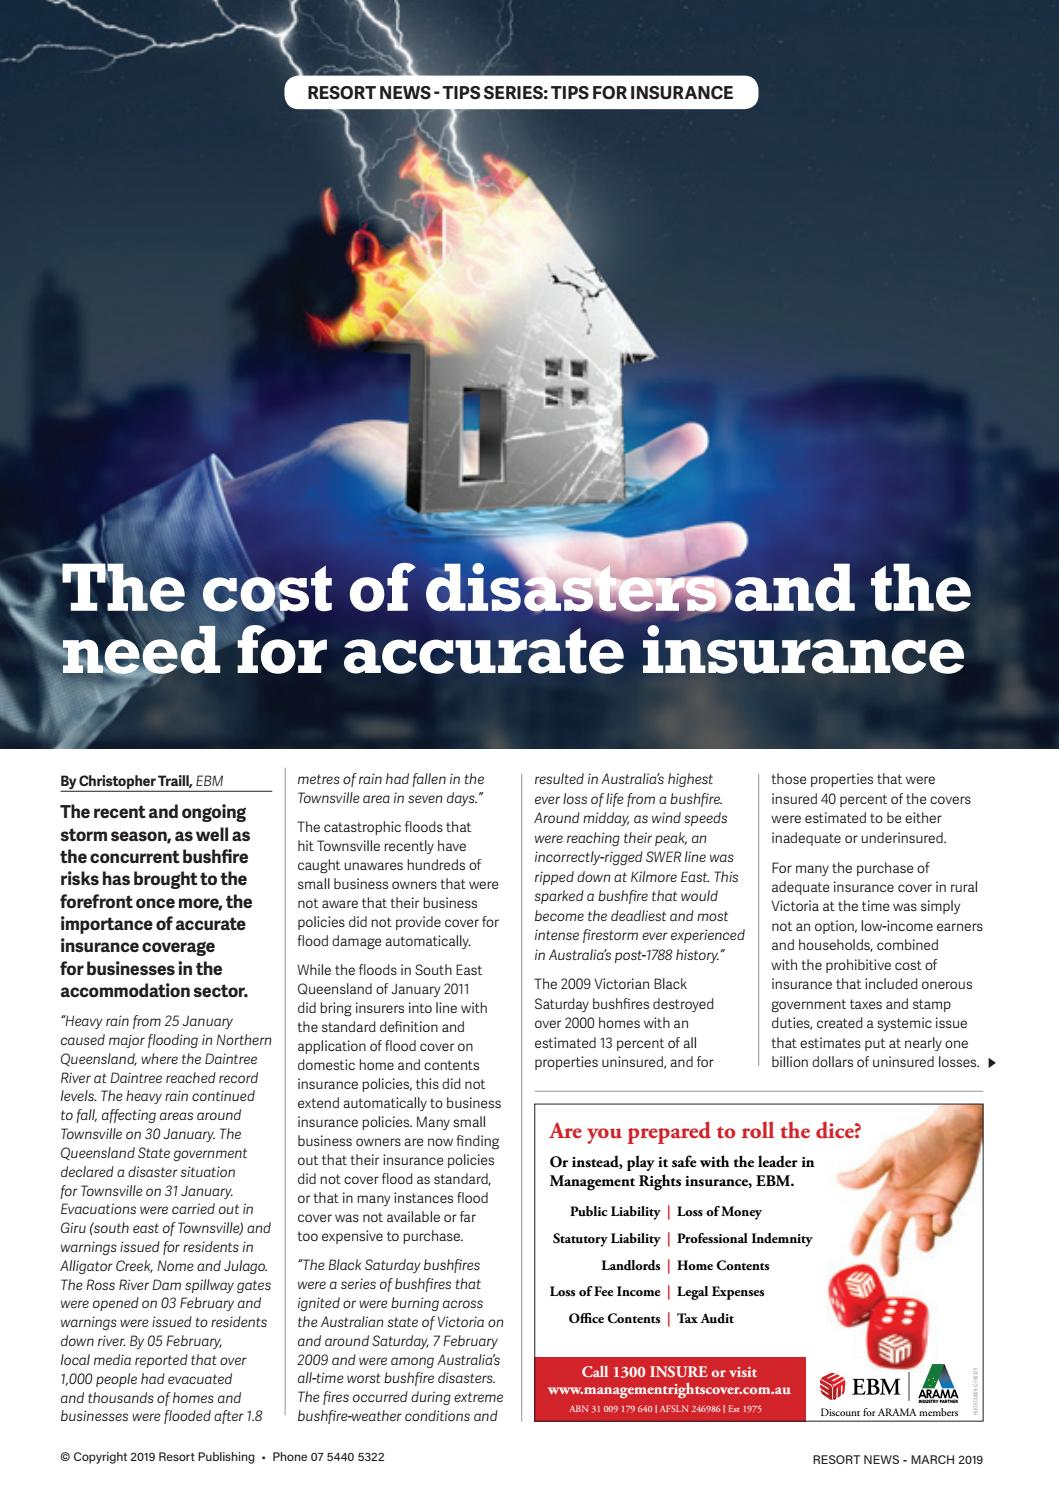 Rn271 Tips For Insurance By Multimedia Au Nz Issuu